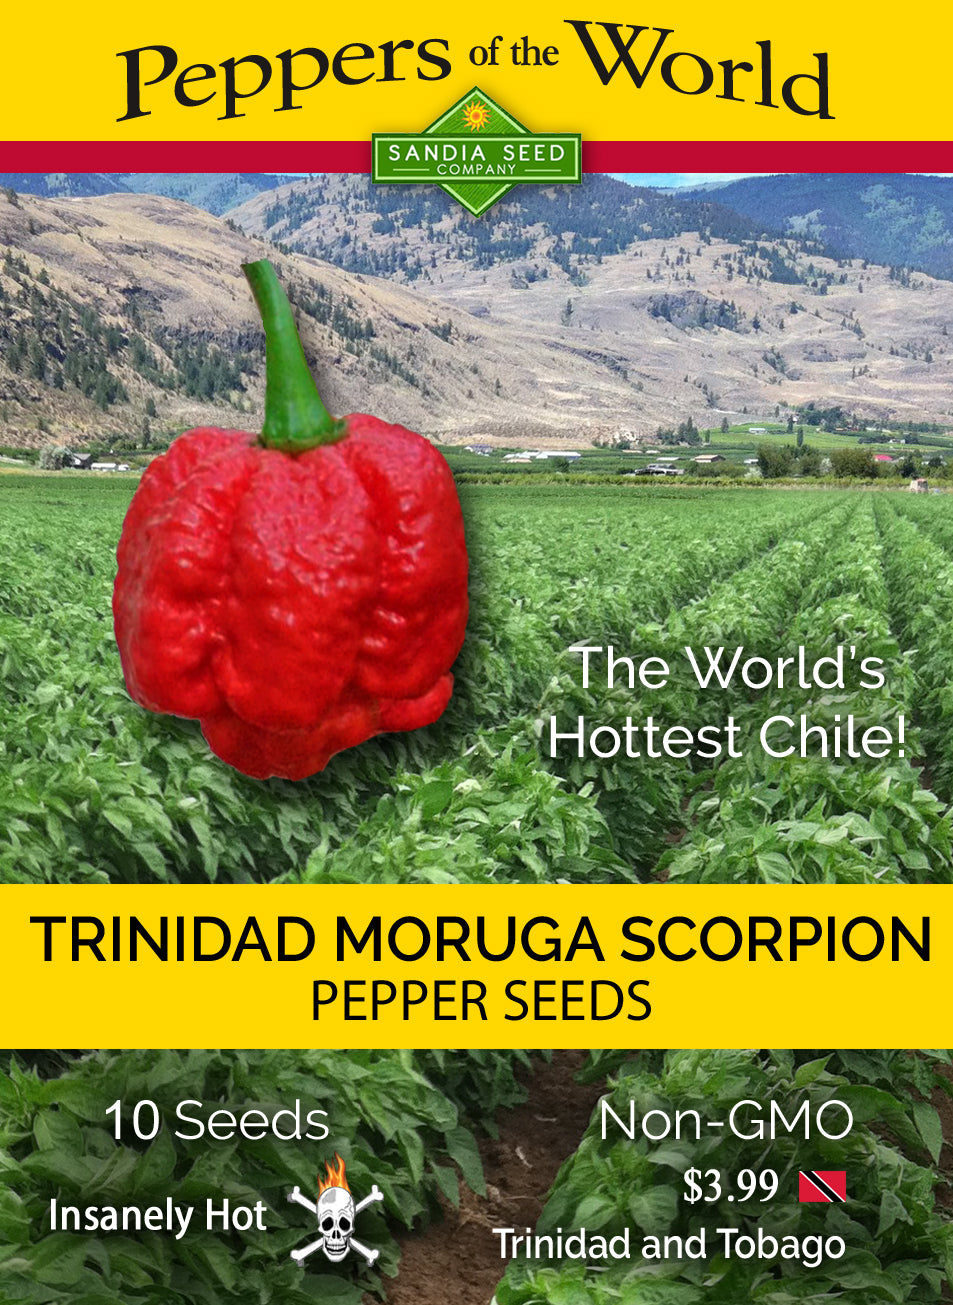 Trinidad Moruga Scorpion Seeds from Sandia Seed